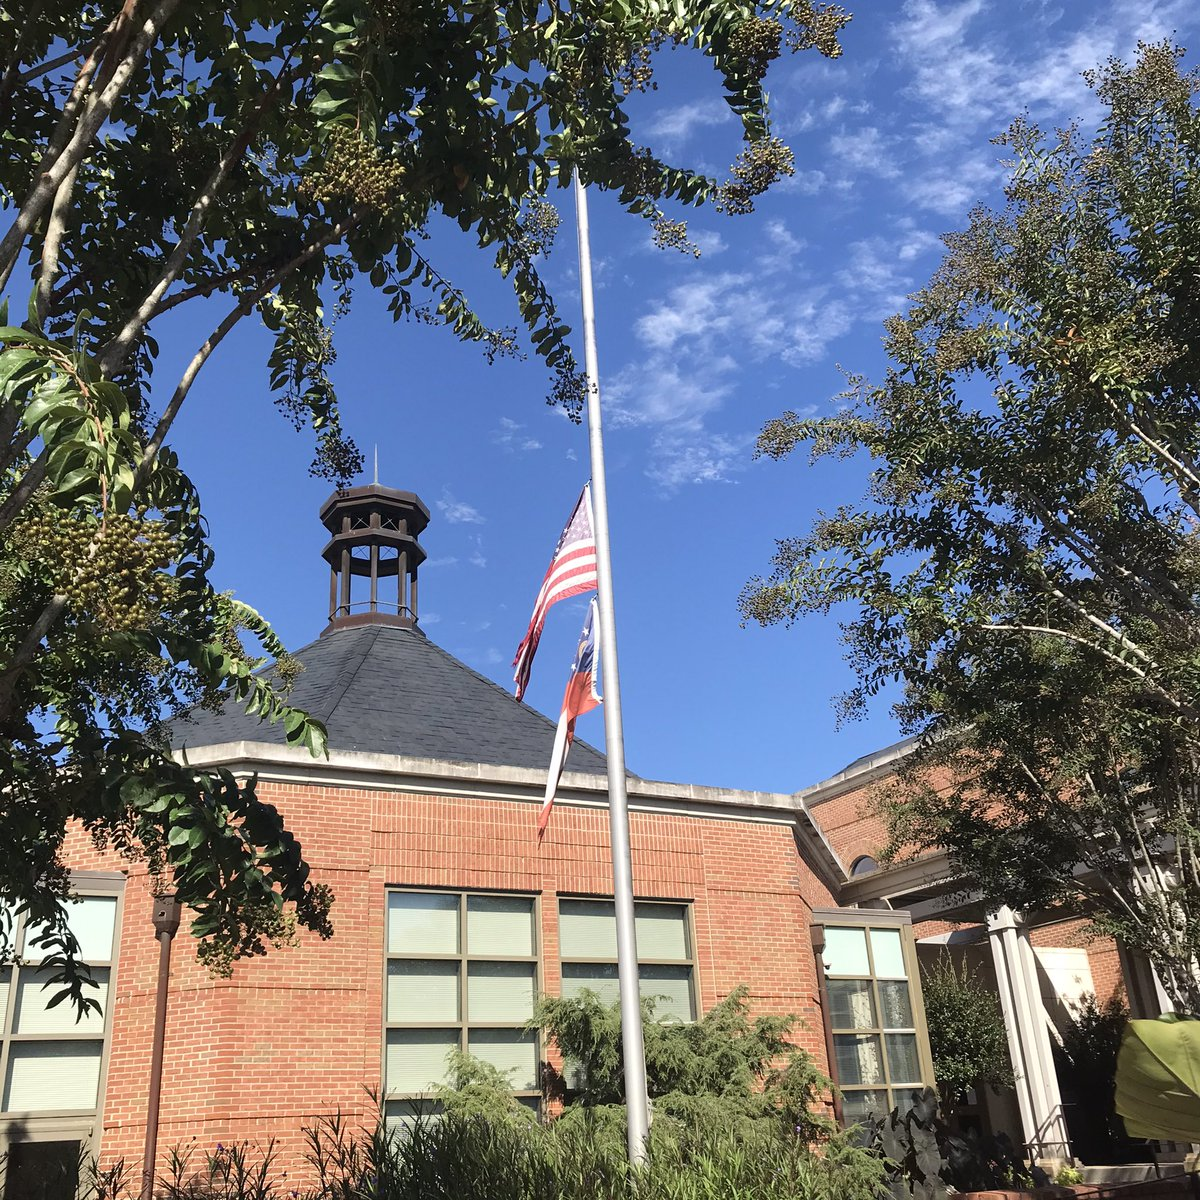 Our flags at Newnan City Hall will fly half-staff in honor and memory of The Honorable Ruth Bader Ginsburg, Associate Justice of the Supreme Court of the United States.